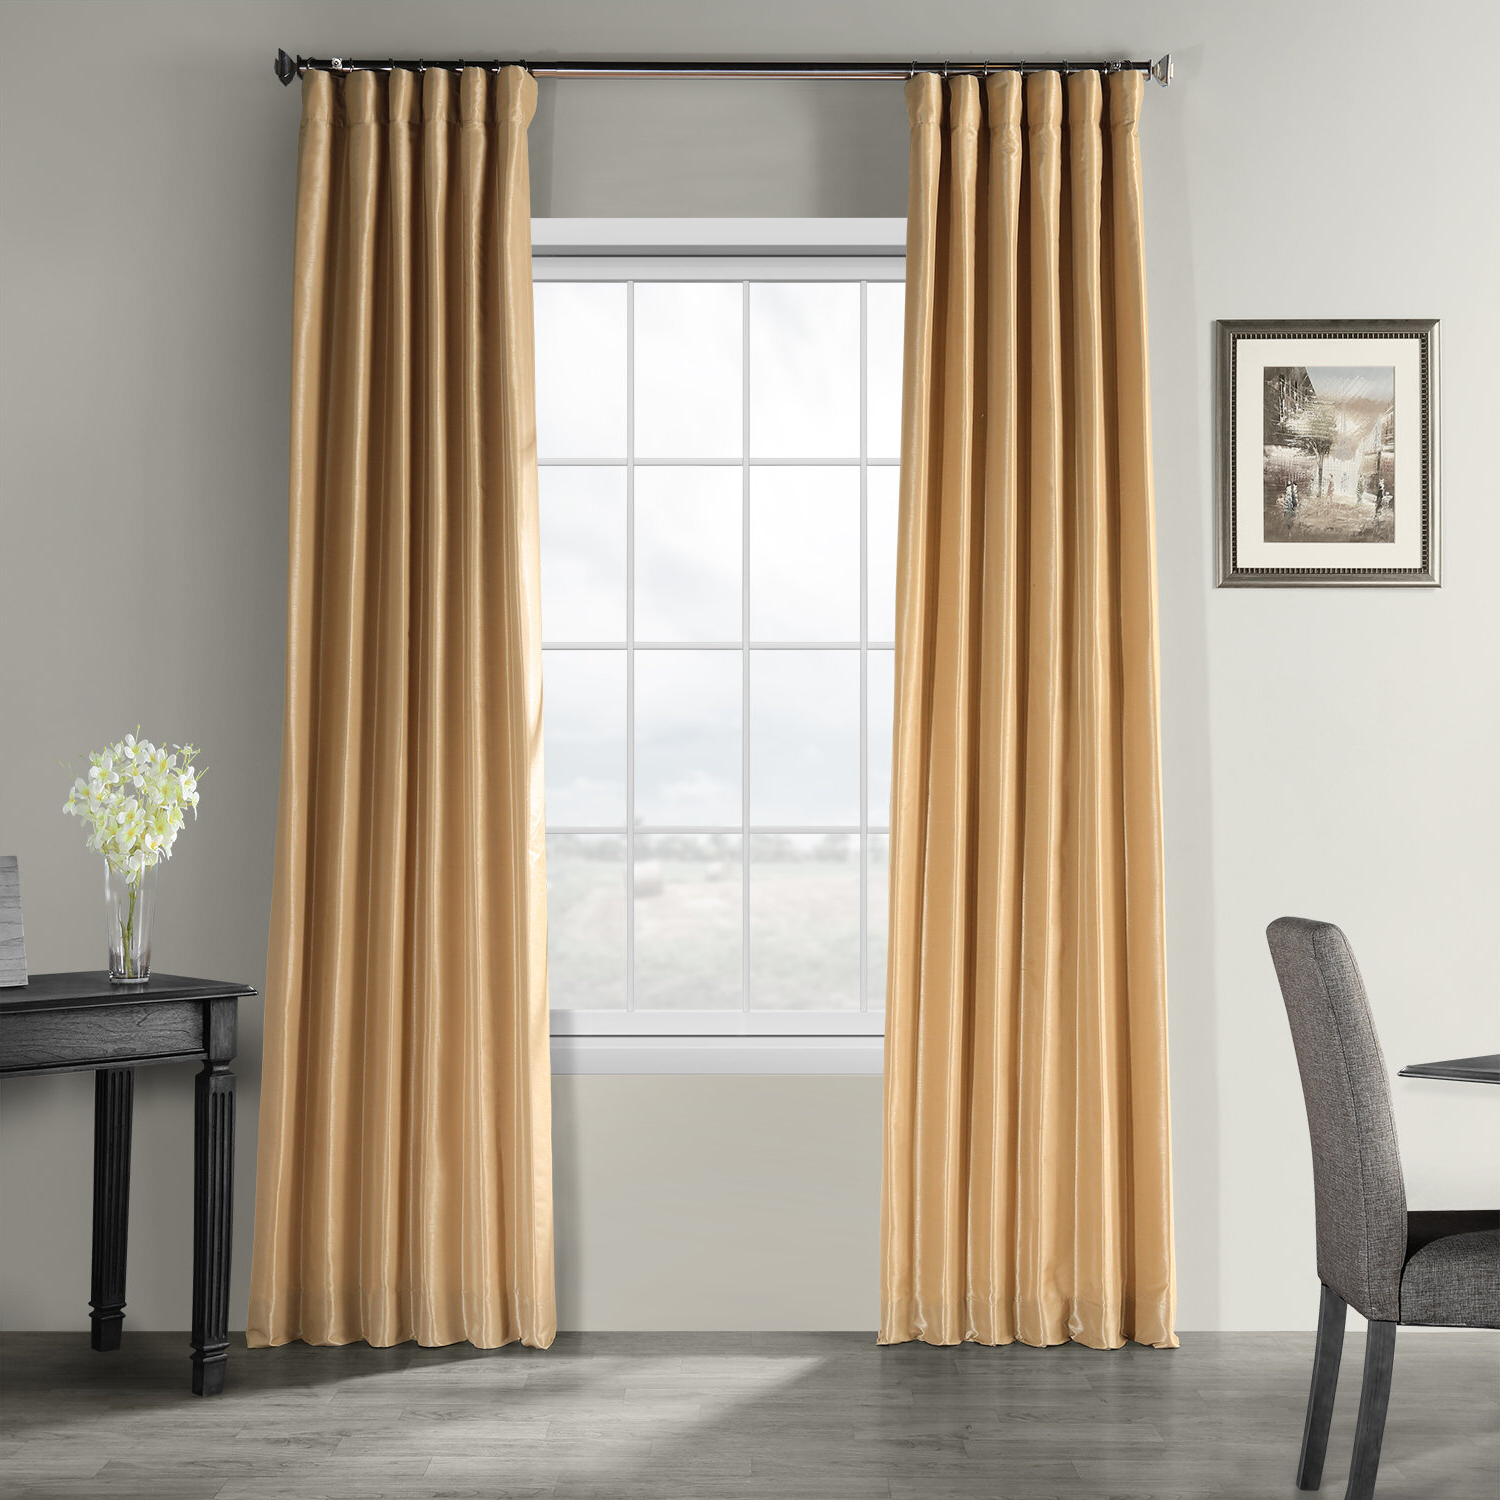 Forbell Solid Vintage Textured Faux Dupioni Silk Rod Pocket Single Curtain Panel With Regard To Recent Vintage Faux Textured Dupioni Silk Curtain Panels (View 6 of 20)